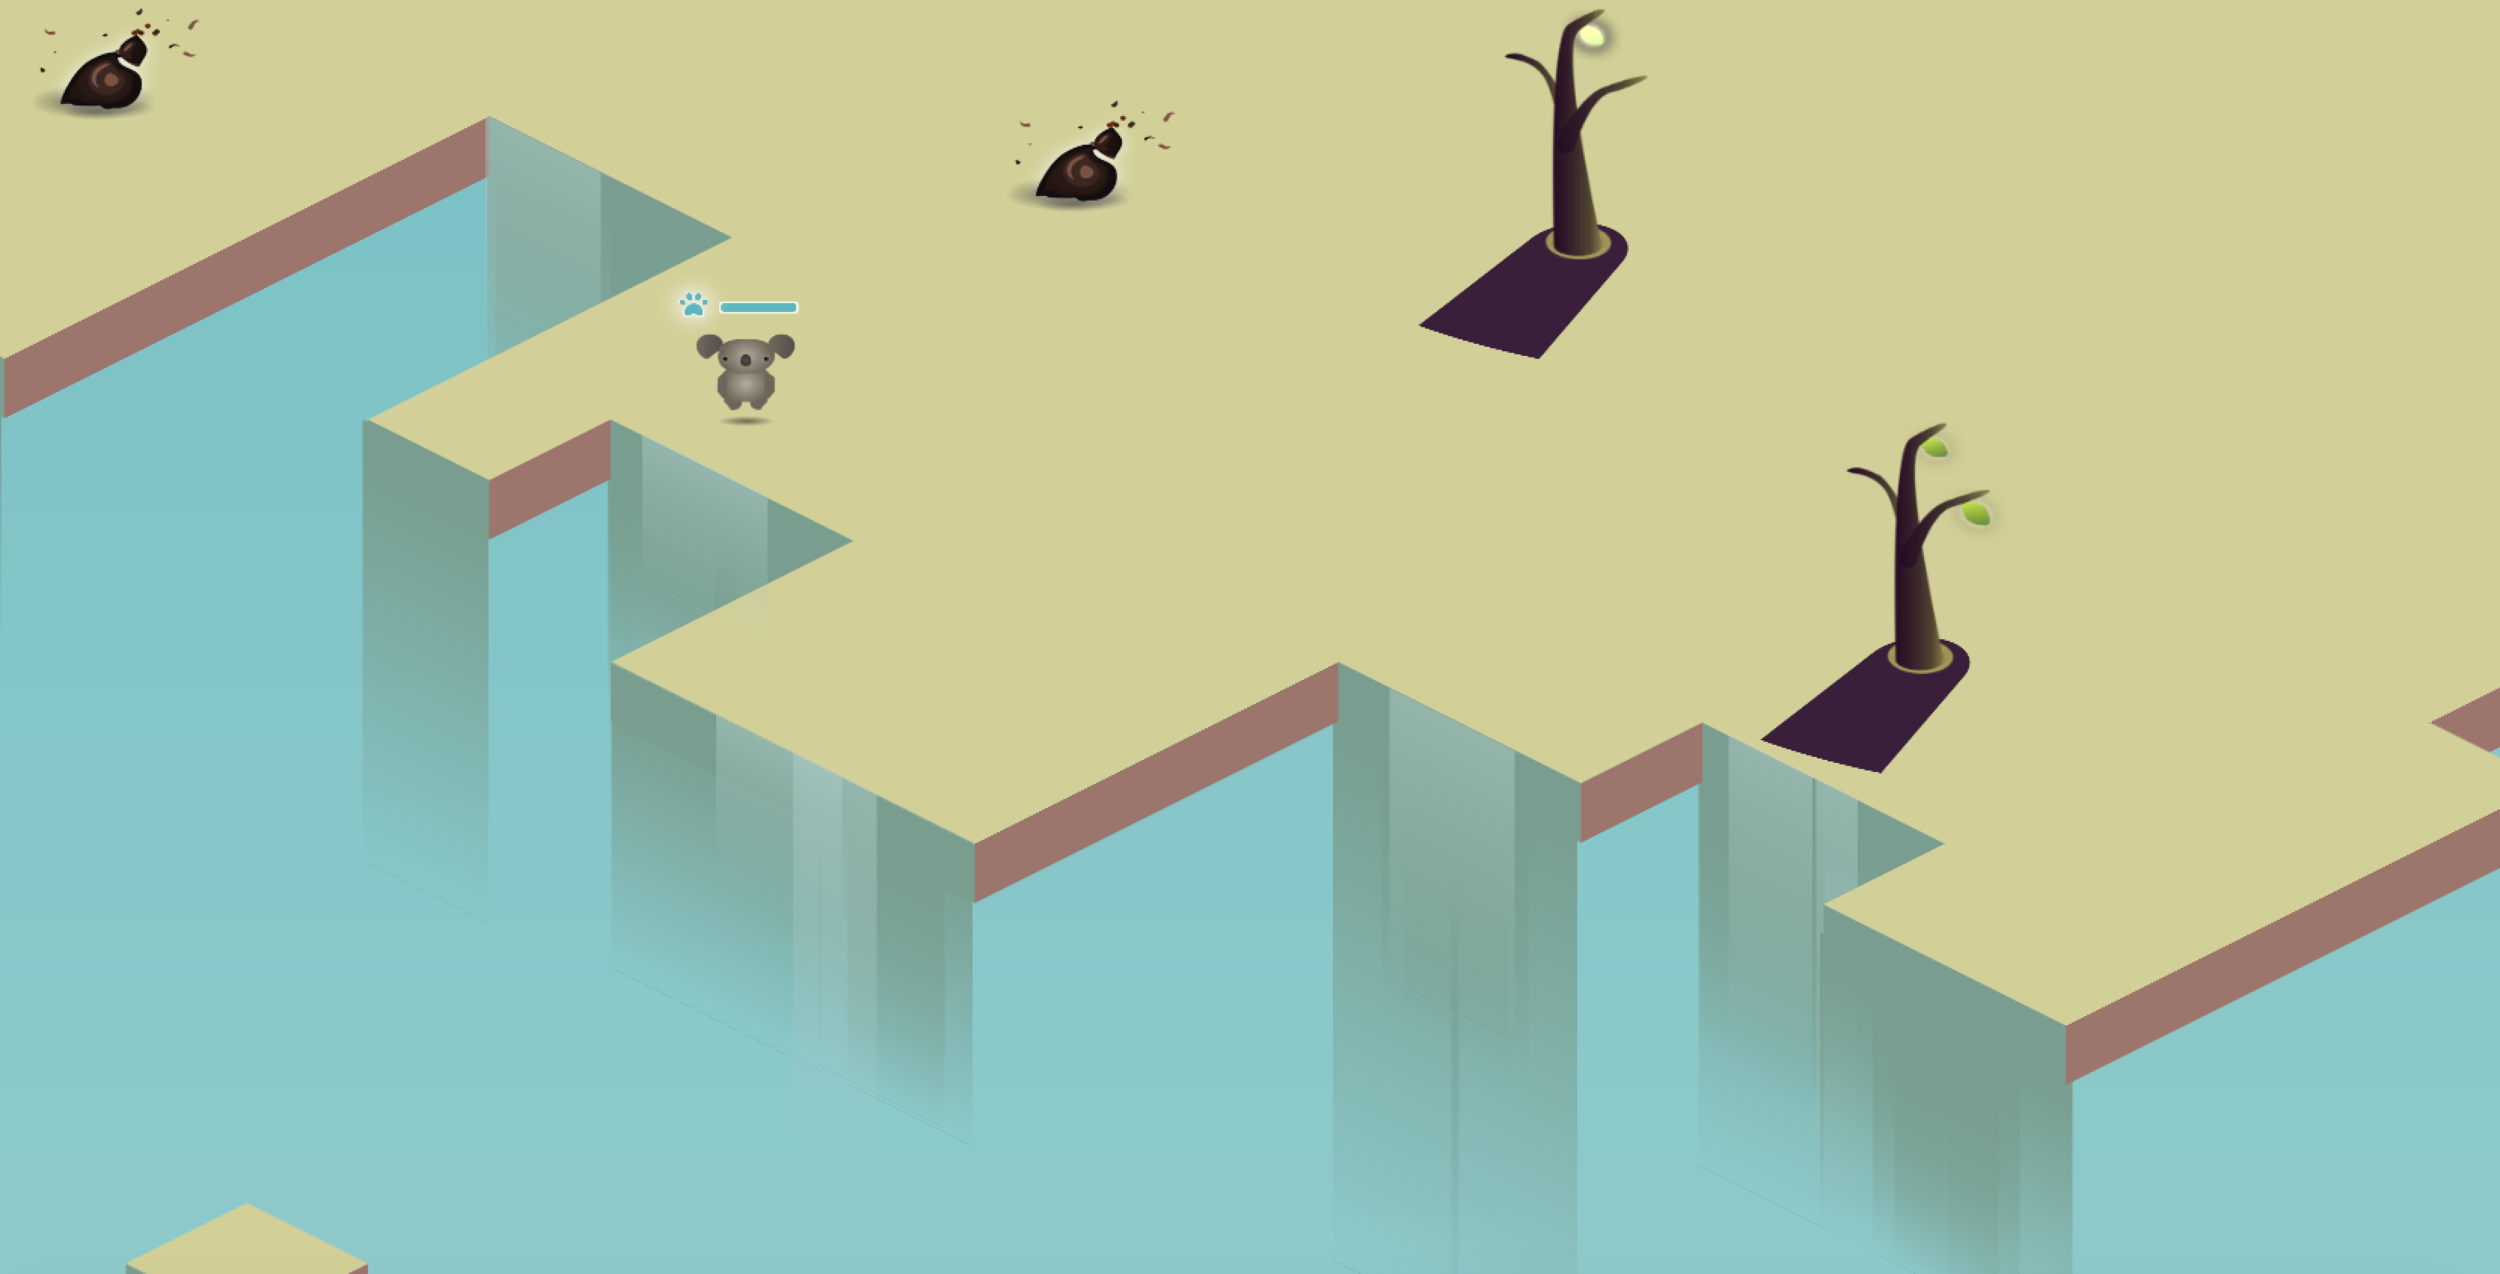 The game in action: the landscape is sharp and geometric to indicate a surreal environmental beauty, whereas the interact-able items are round, soft and accessible.